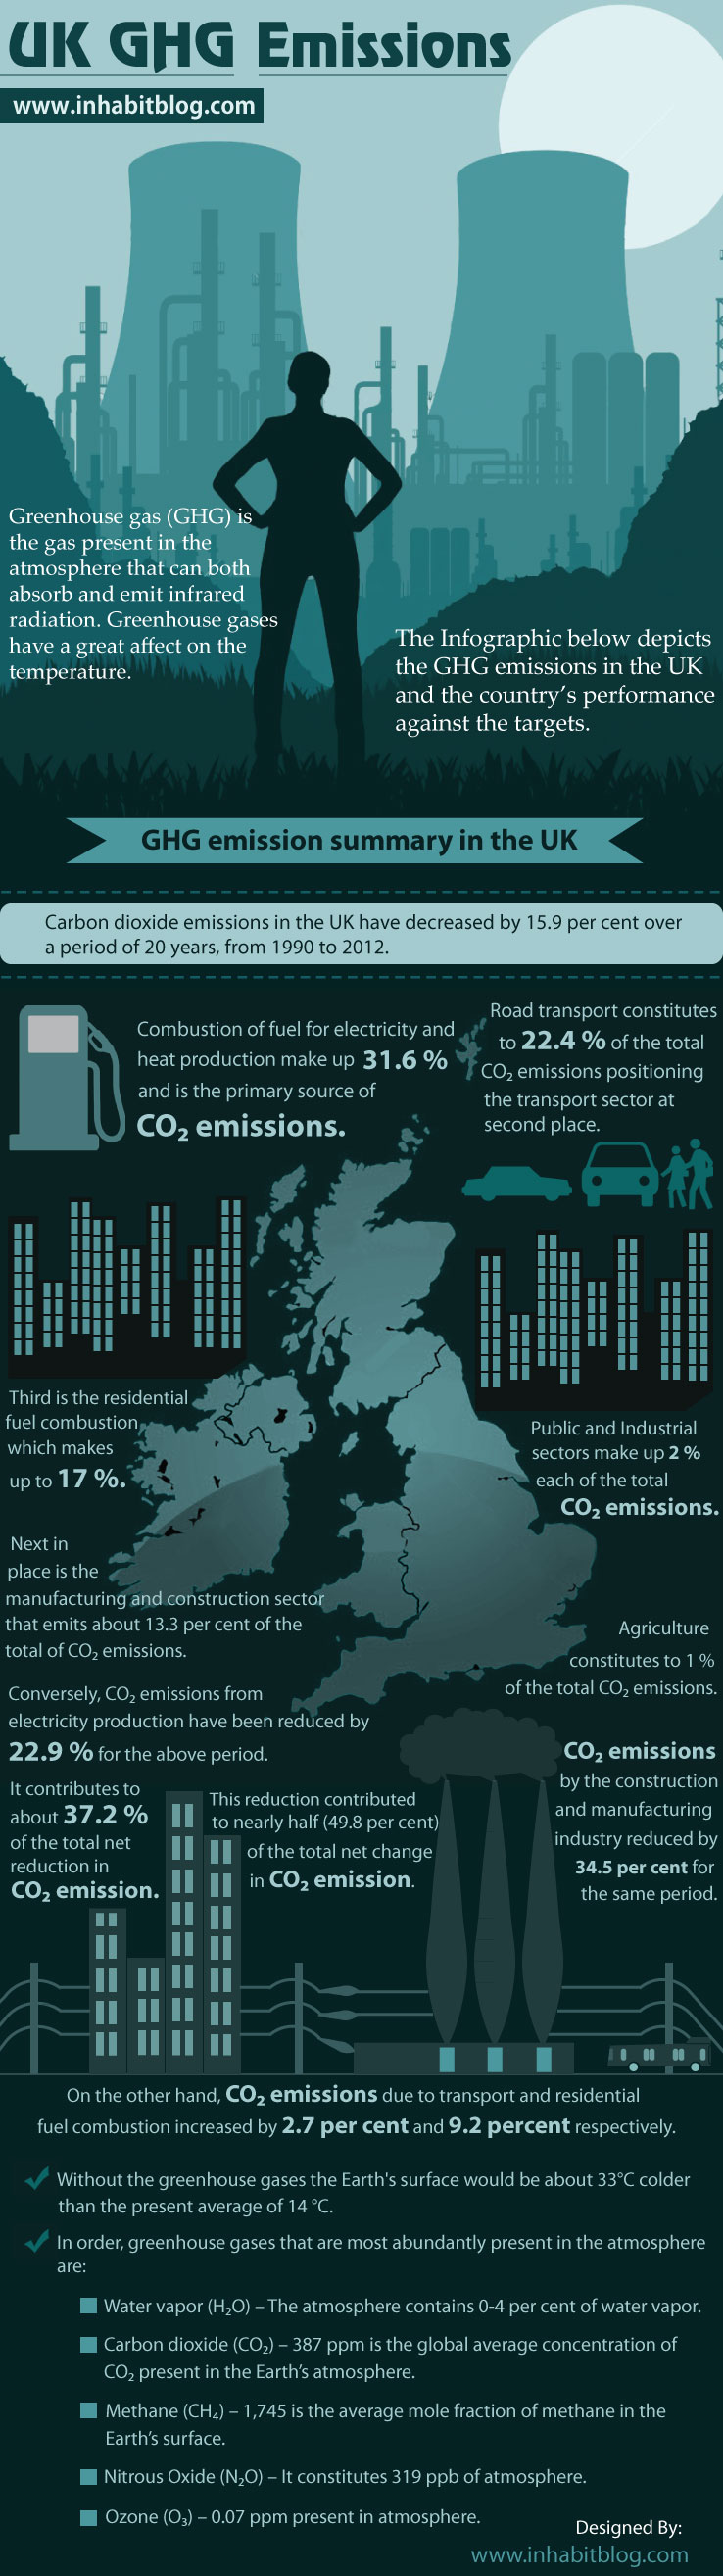 GHG emission summary in the UK